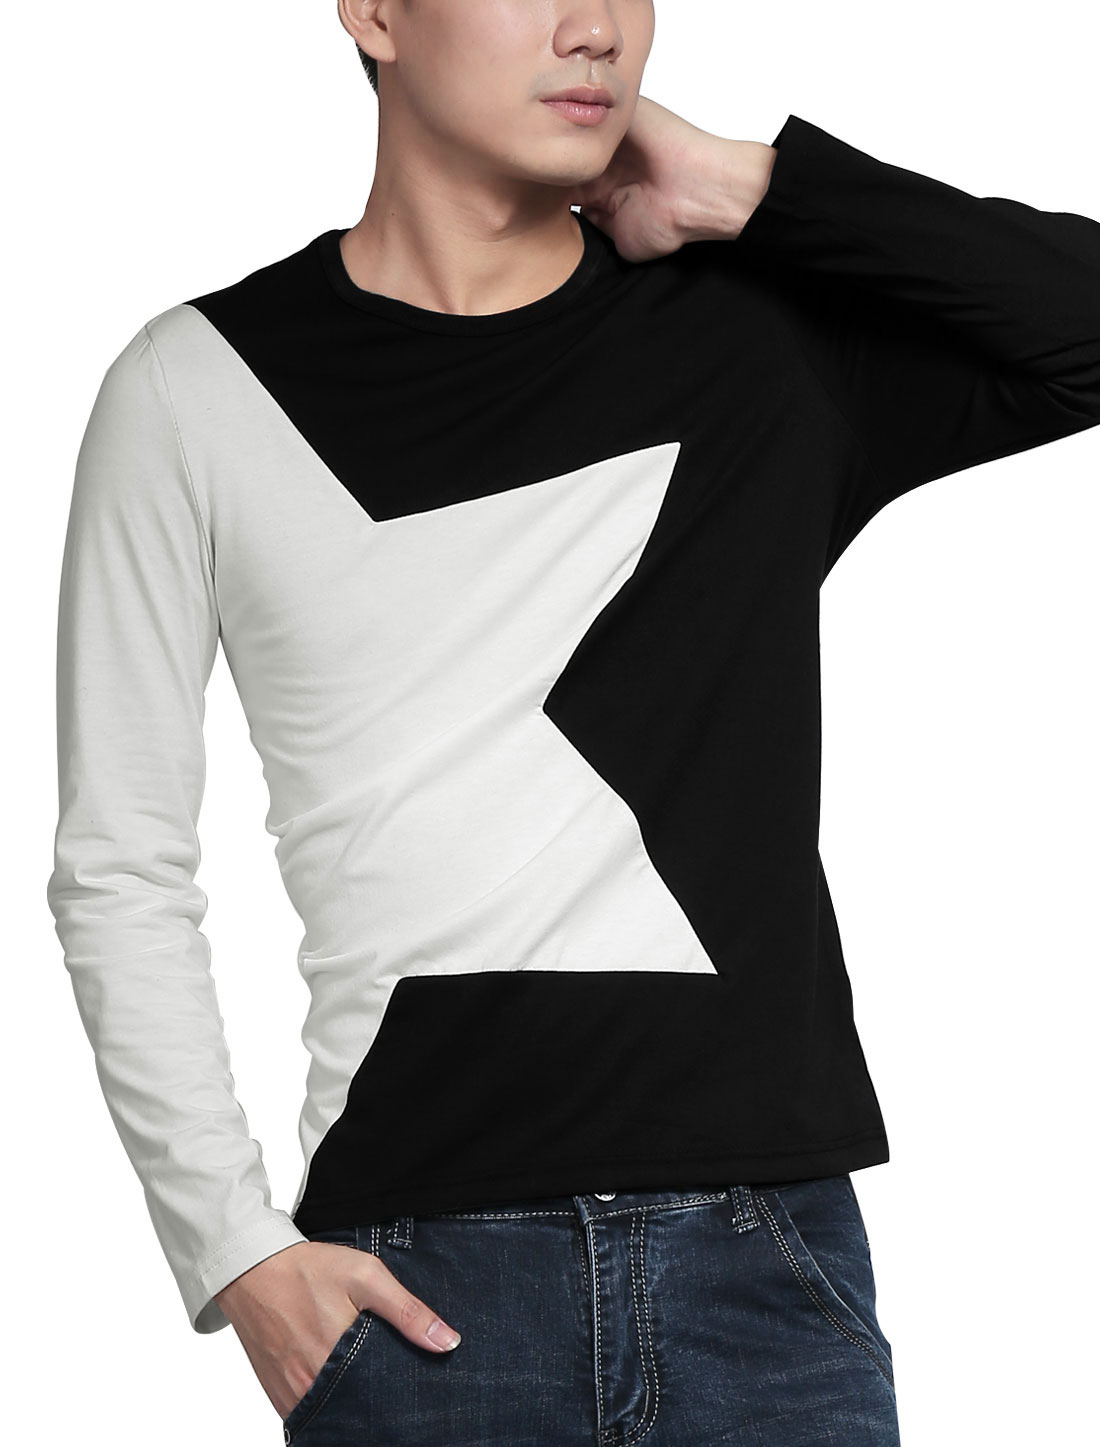 Mens Black White Round Neck Long Sleeve Star Pattern Autumn New Shirt S